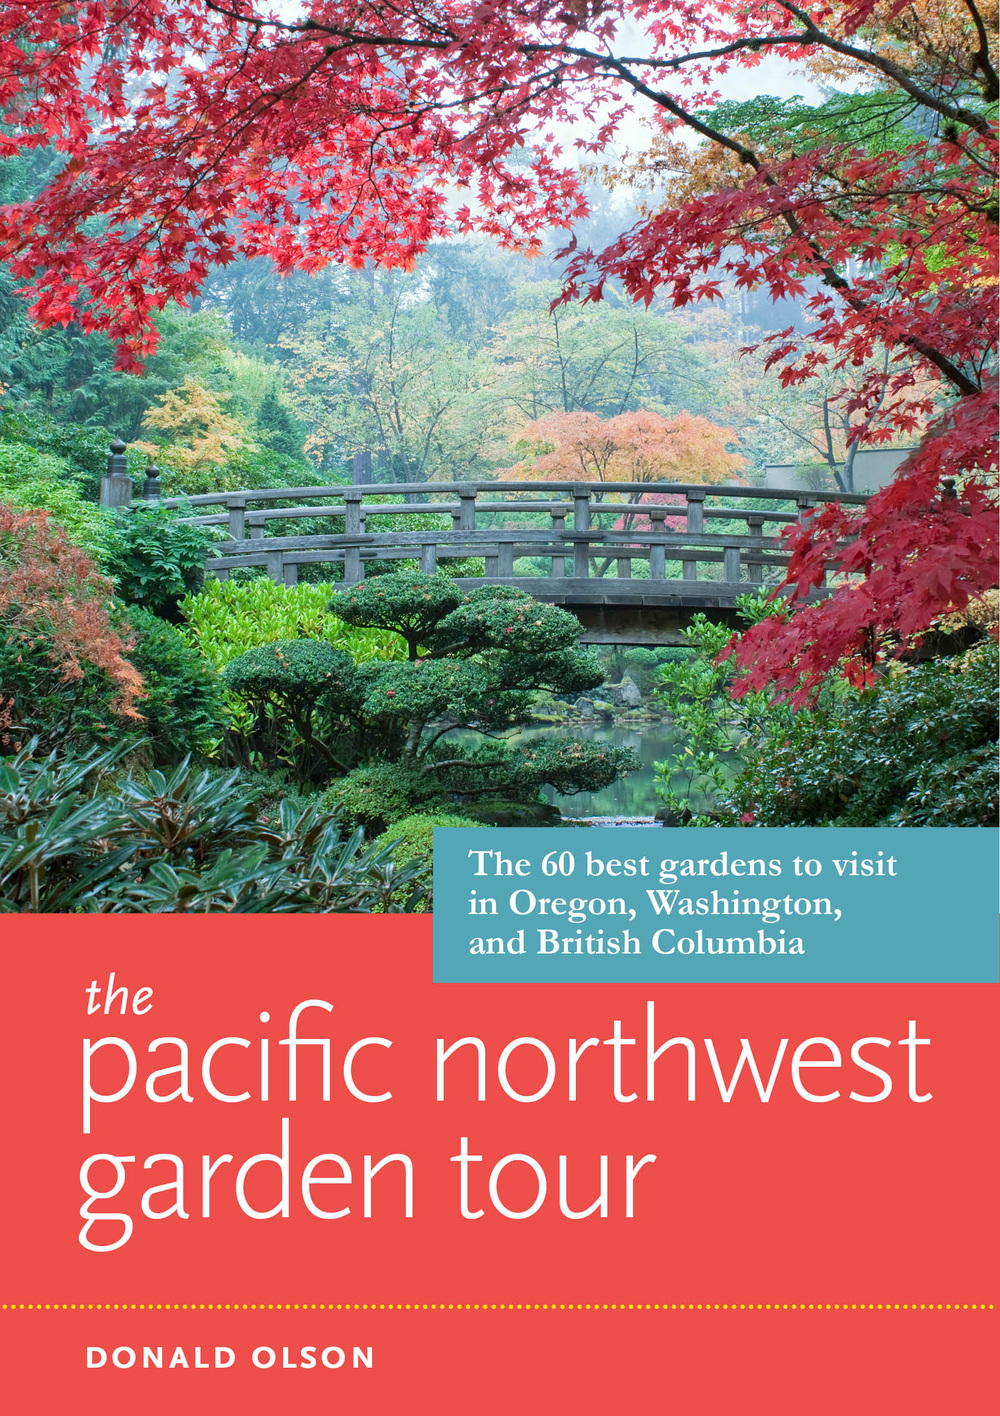 Pacific Northwest Garden Tour COVER.jpg